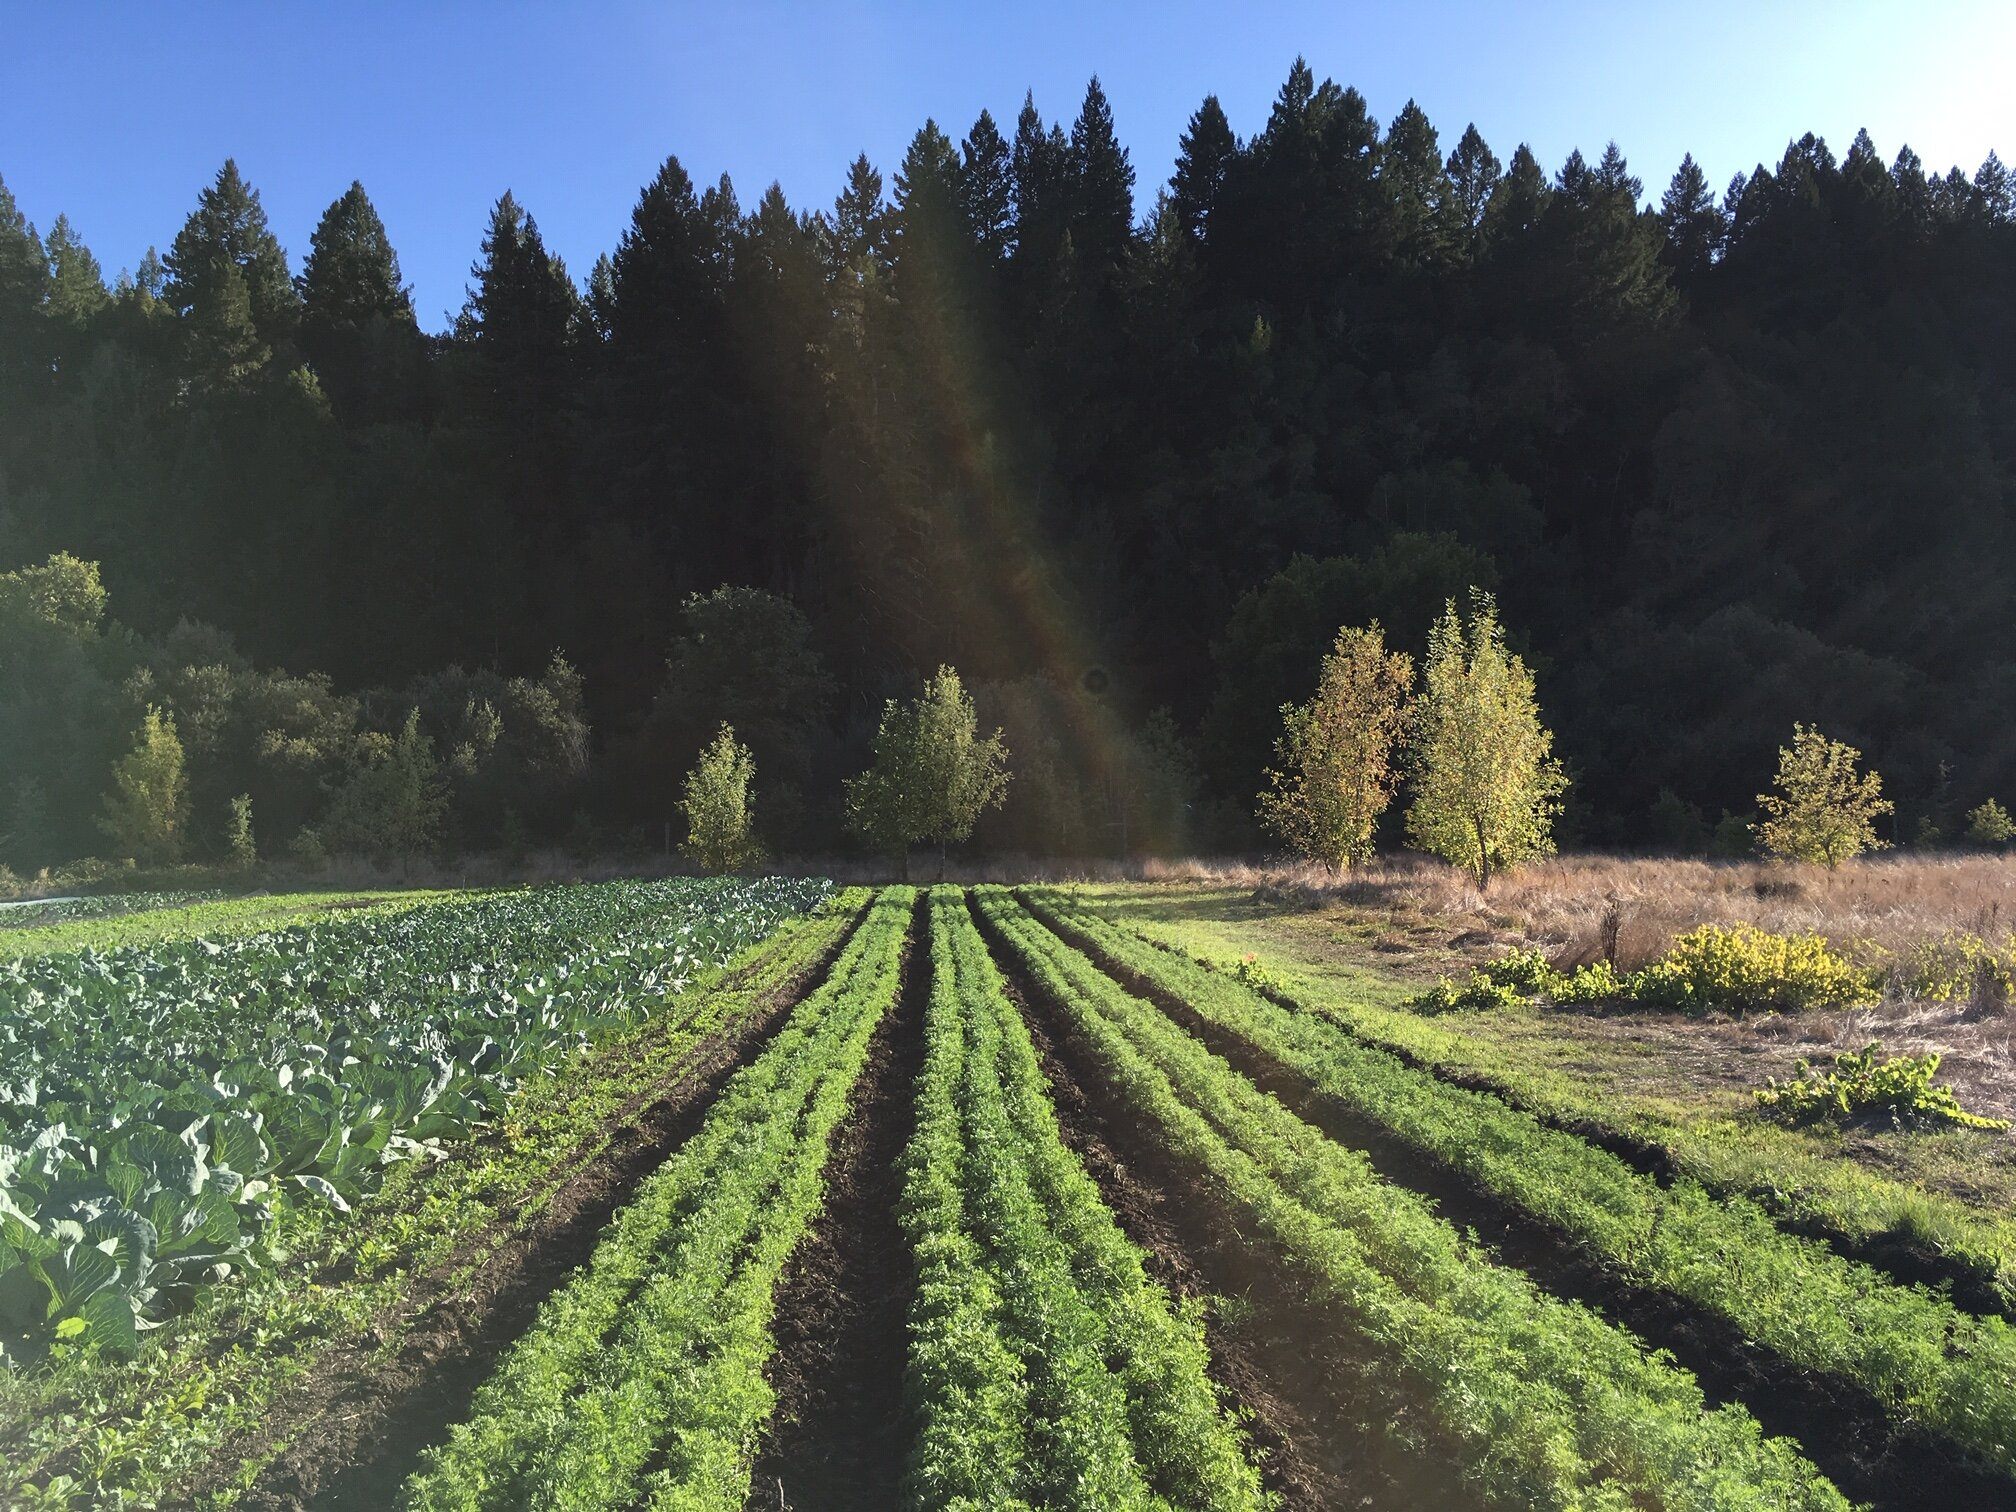 The Fall carrot patch turning sunlight into beta carotene!